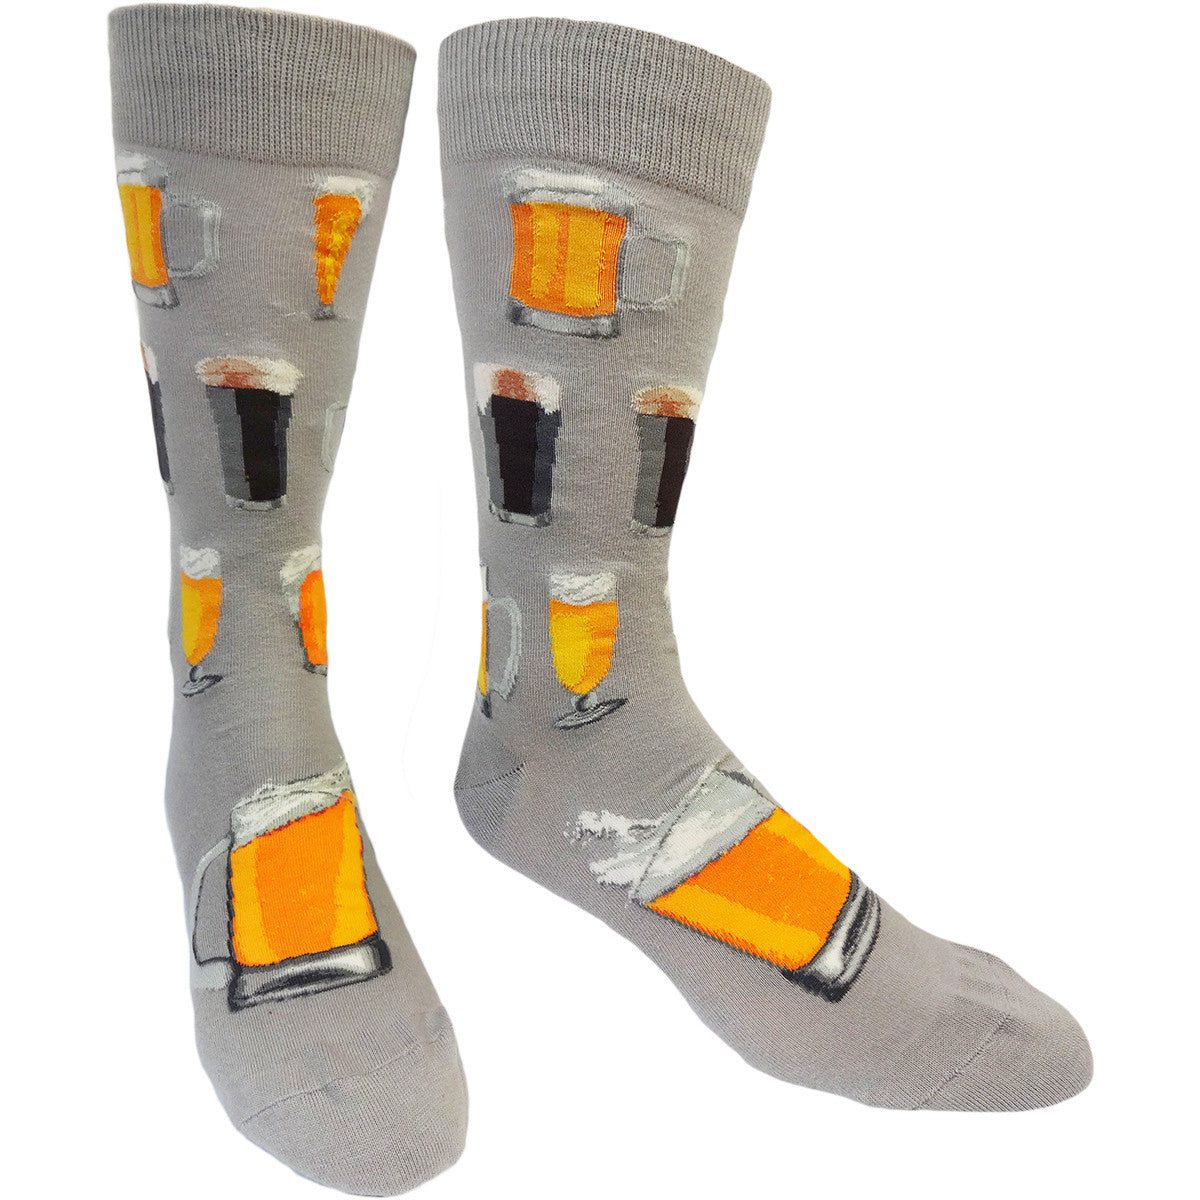 Show off your exBEERience during a night out with a pair from our Drinking Socks collection, showing off drinks of all types in both men's and women's sizes, including these grey men's crew socks featuring dark and light tap beers in glass beer mugs.